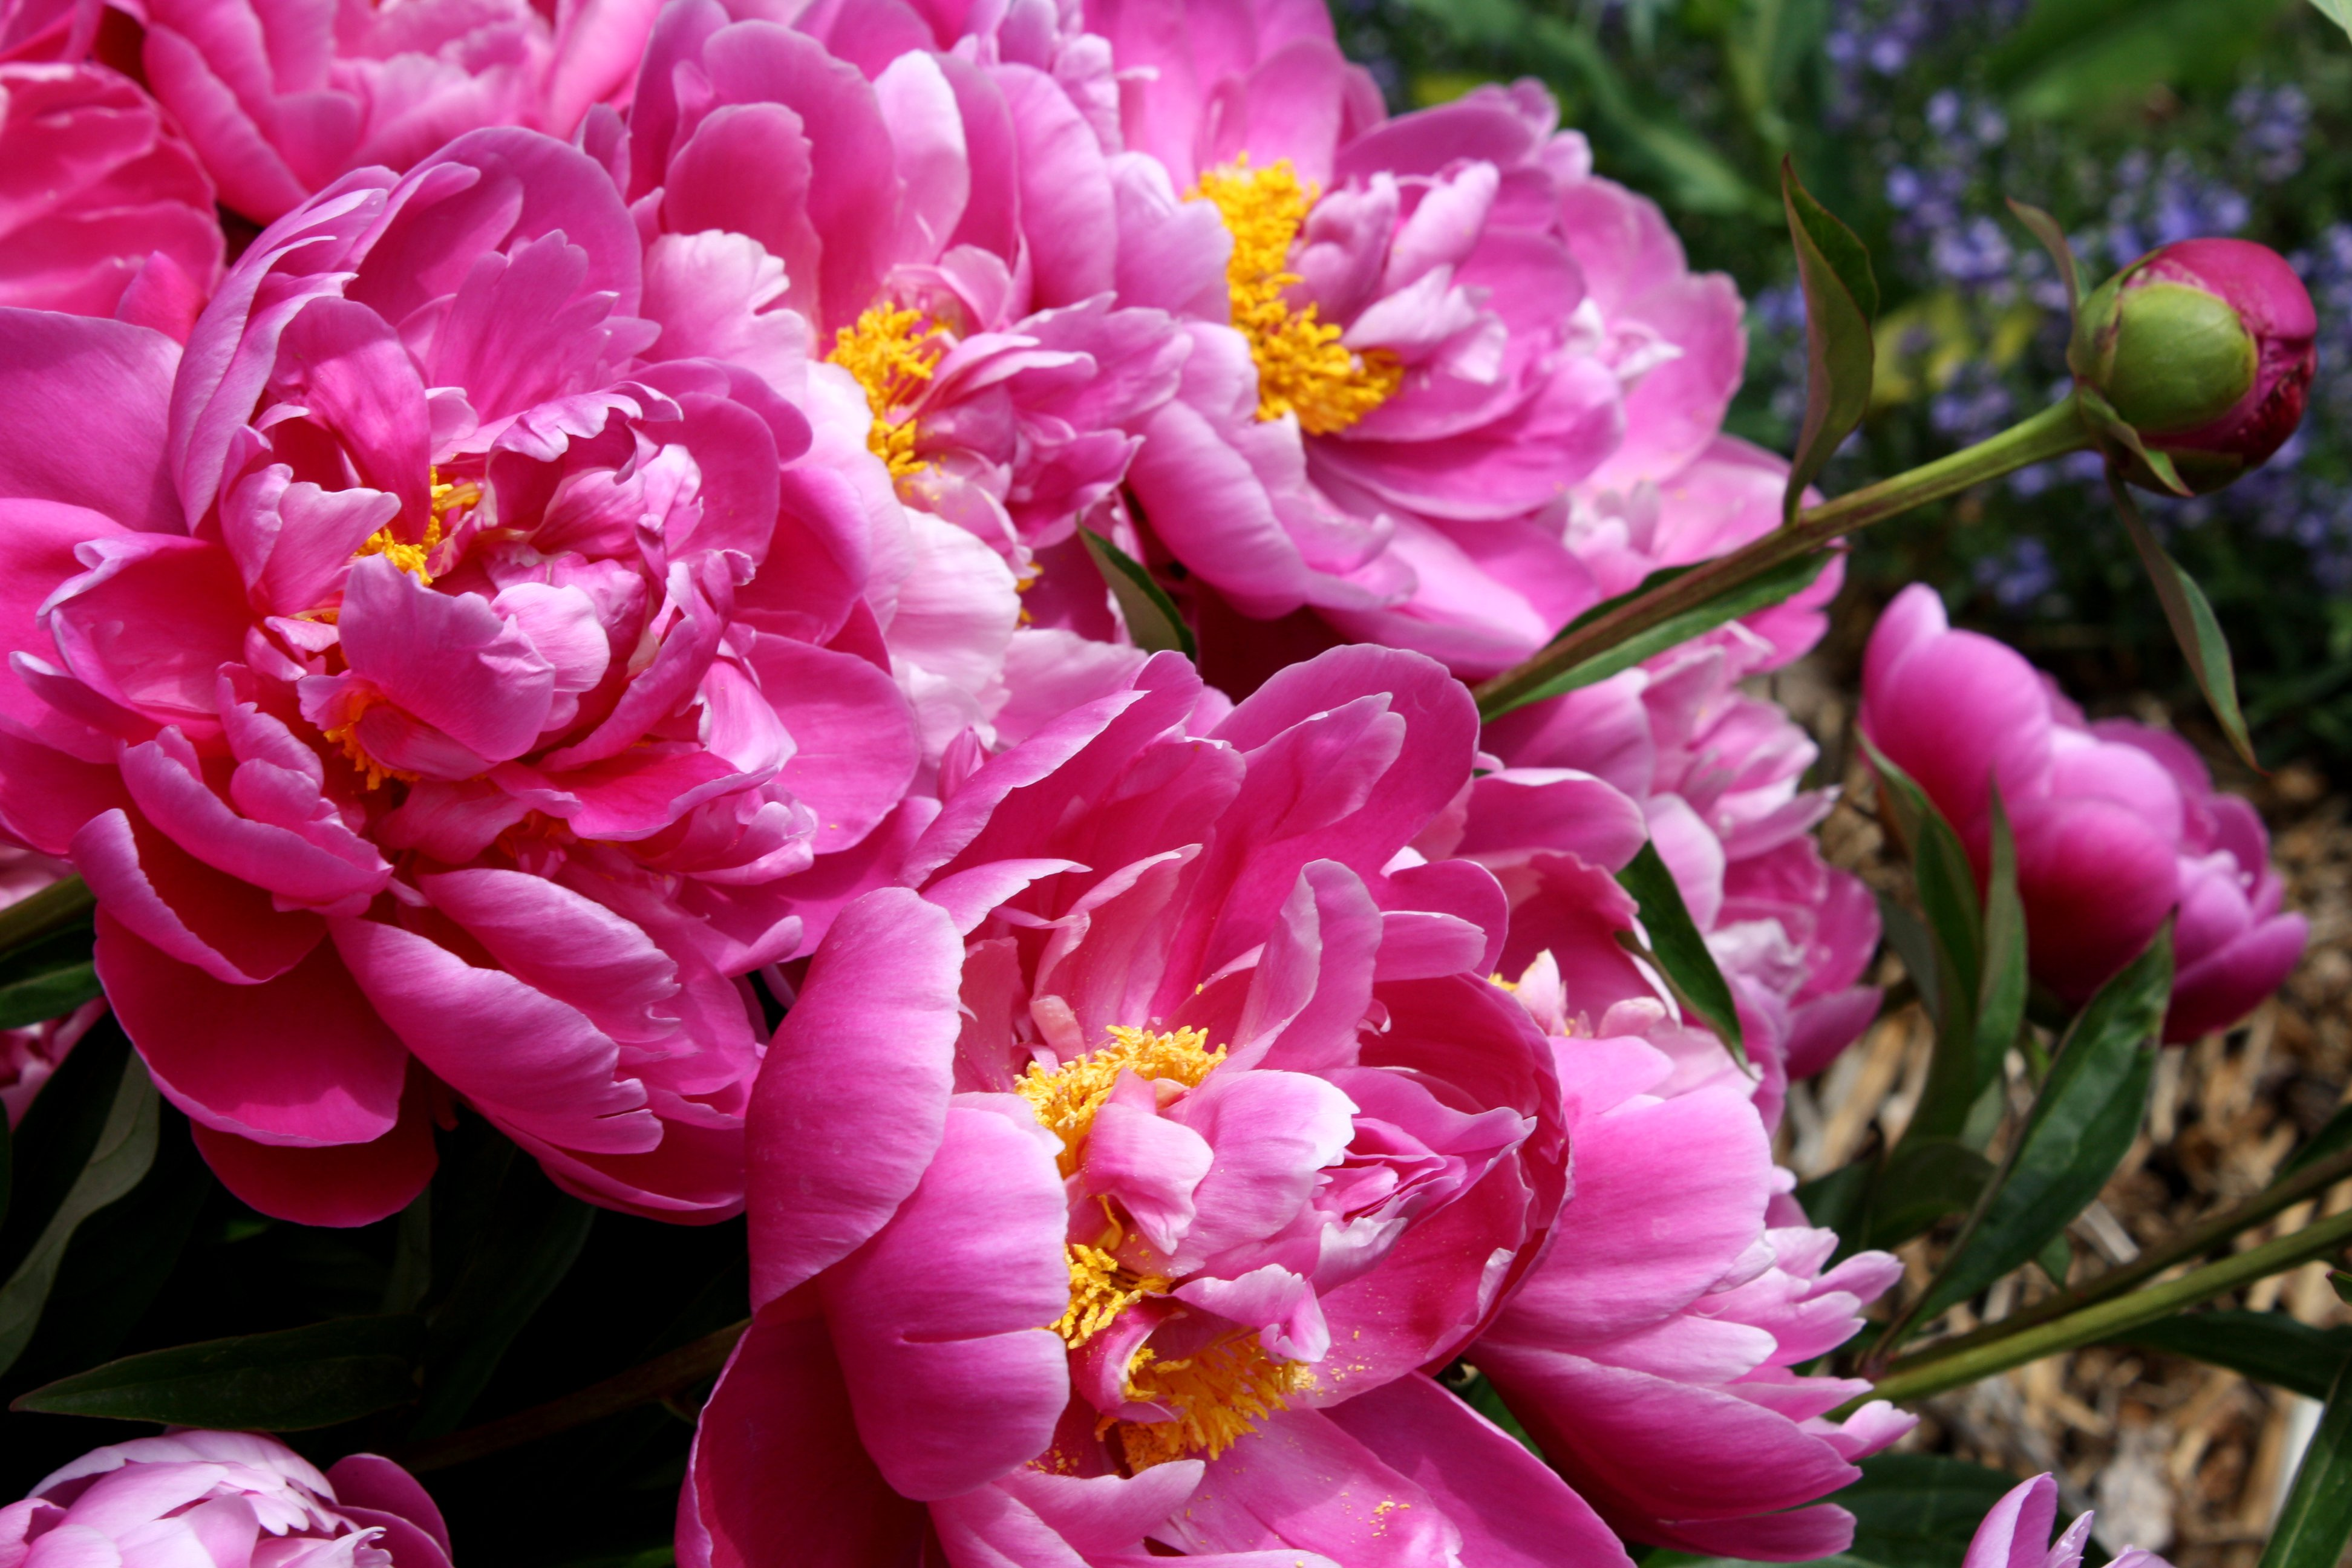 Bright Pink Peony Flowers Picture Free Photograph Photos Public